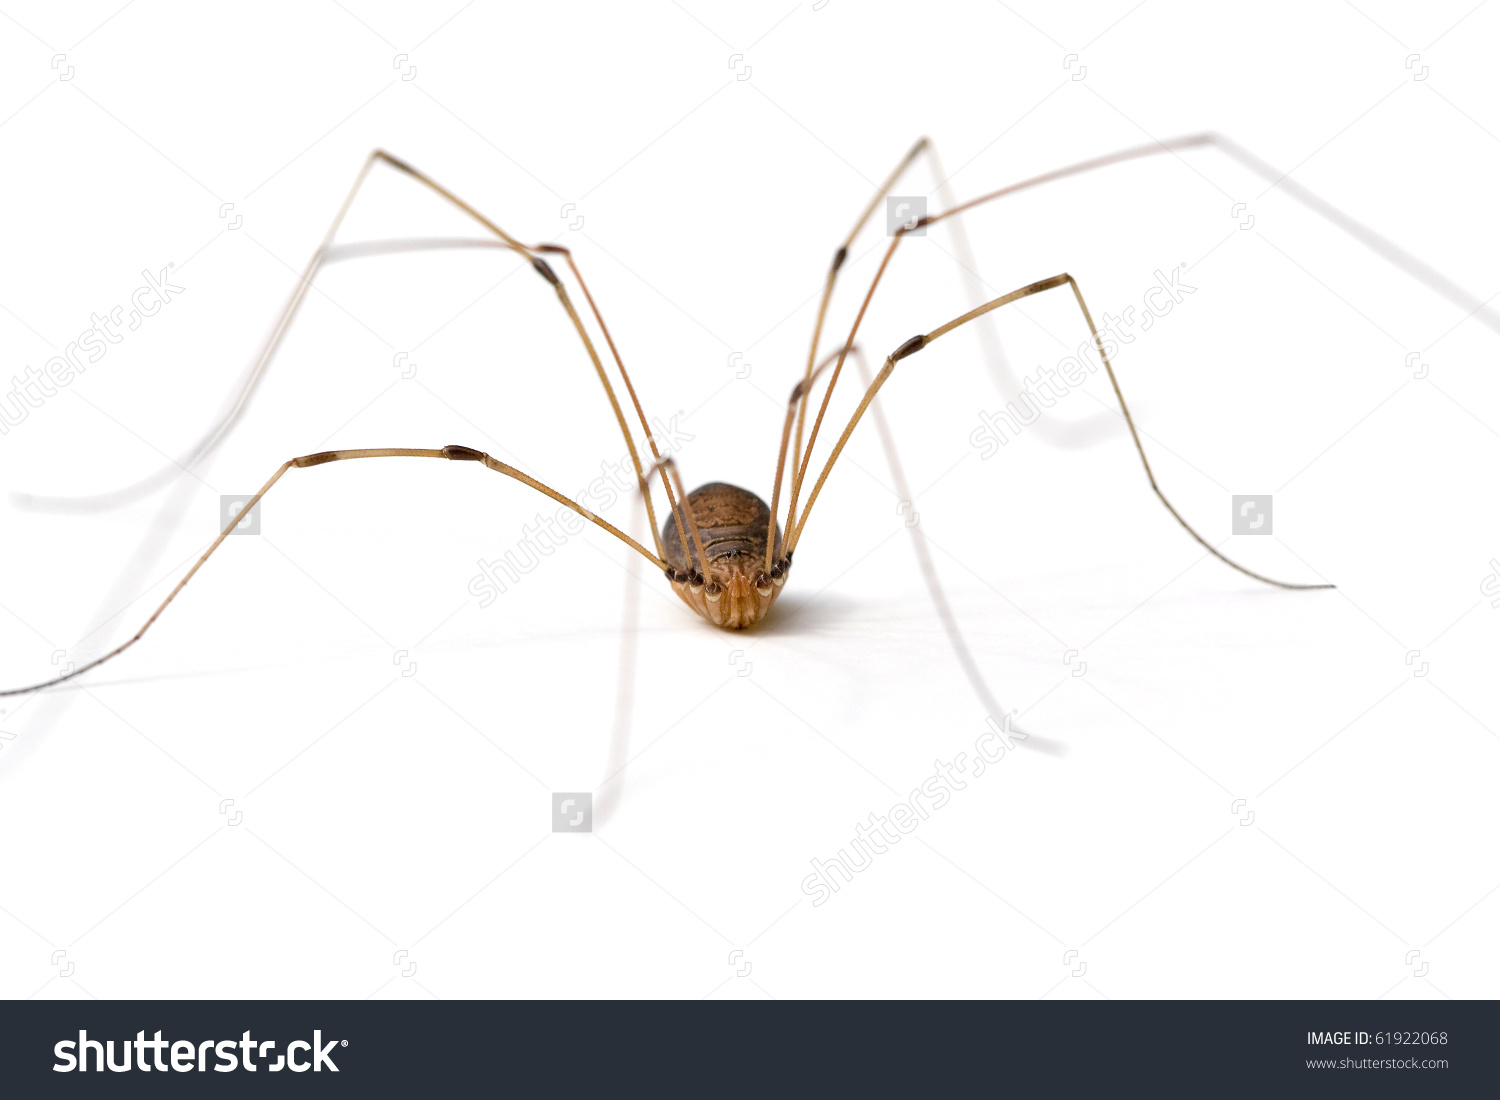 Daddy Long Legs Opiliones Stock Photo 61922068.